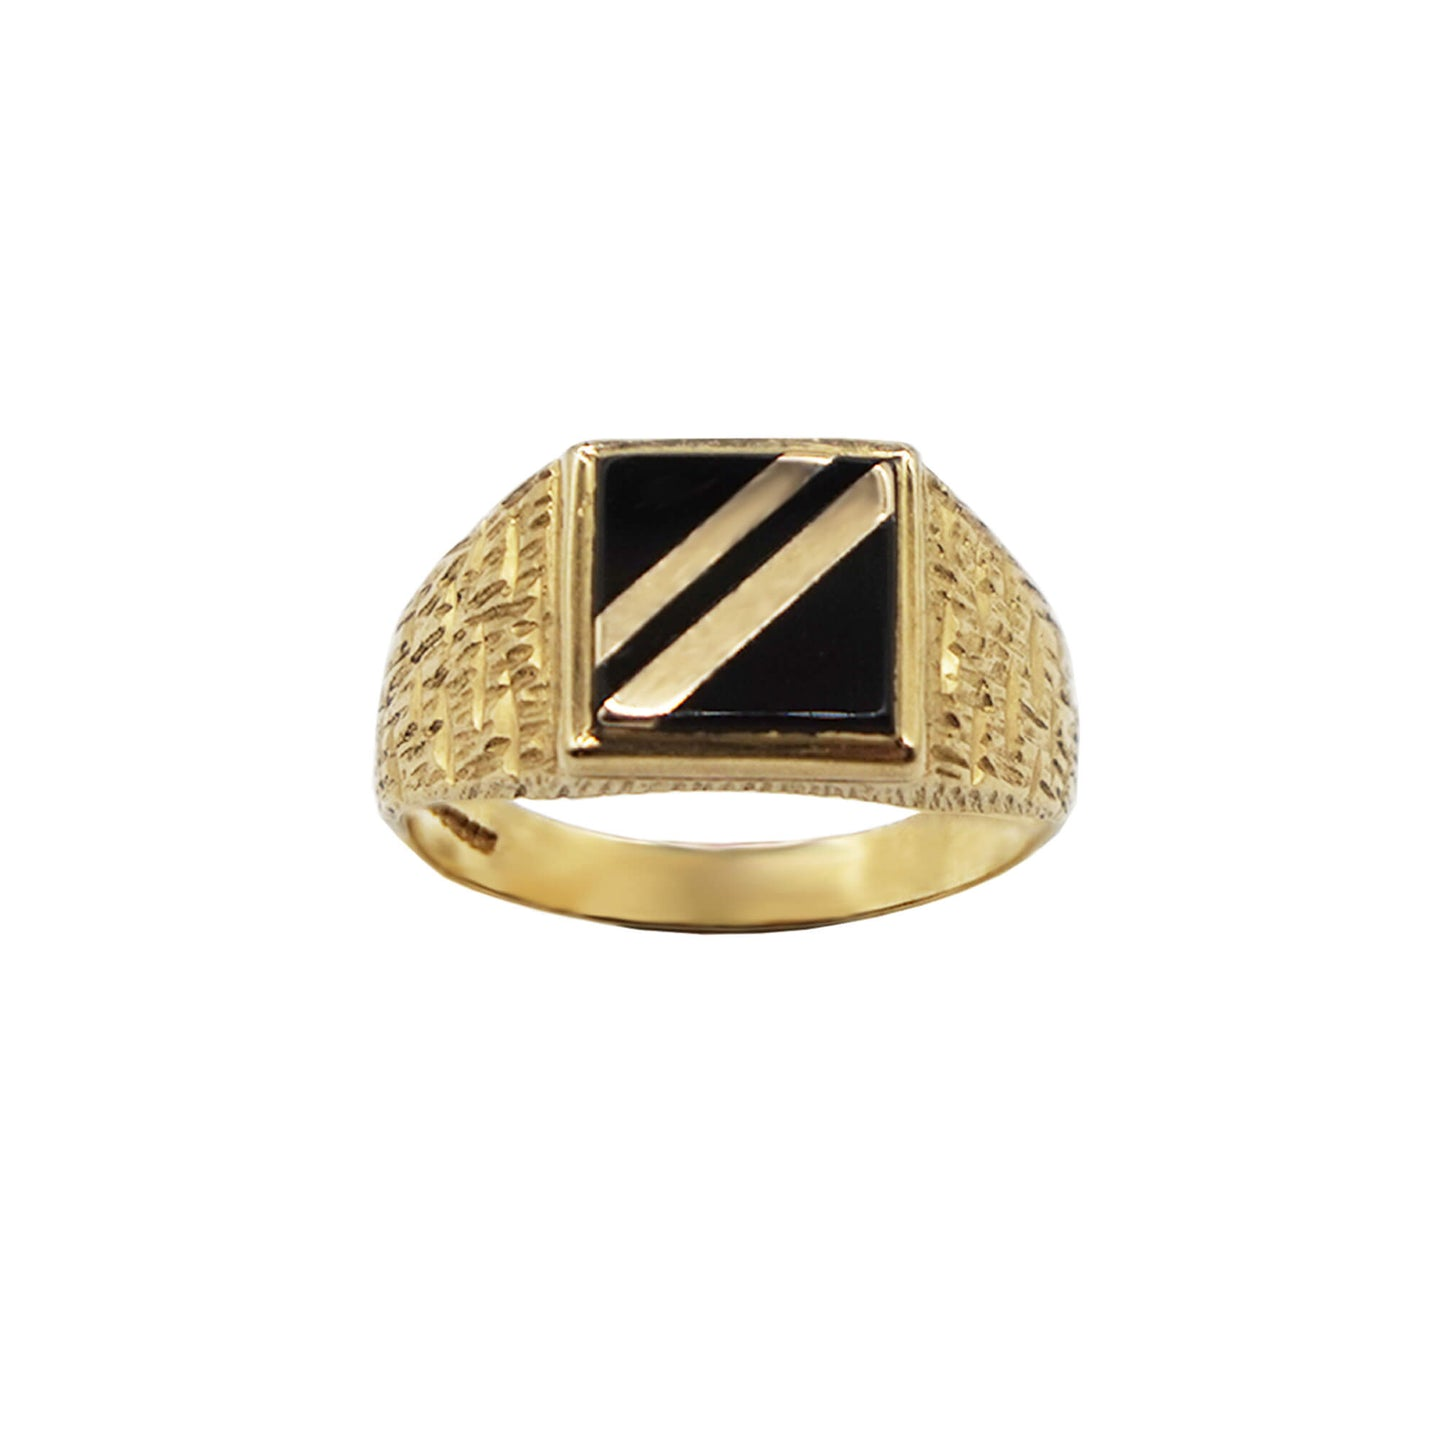 Close Up Vintage 9K Gold Onyx Square face Signet Ring. Black Square Onyx has two gold stripes going diagonally across the centre of the ring. The band is textured and hallmarks can be seen on the inside. Background is white.